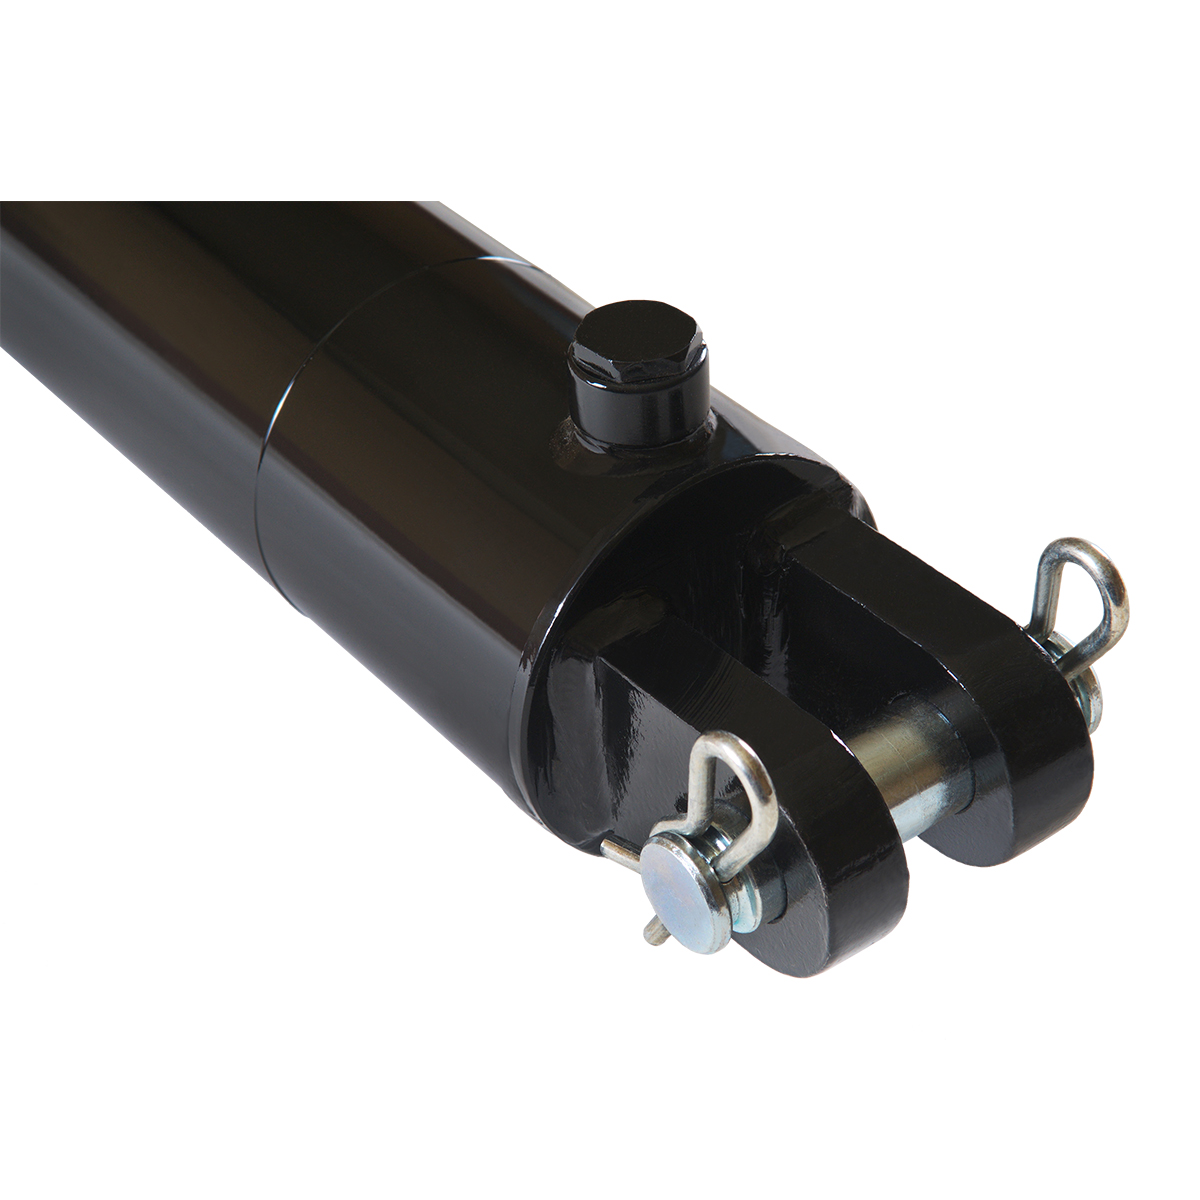 3.5 bore x 24 stroke hydraulic cylinder, welded clevis double acting cylinder   Magister Hydraulics